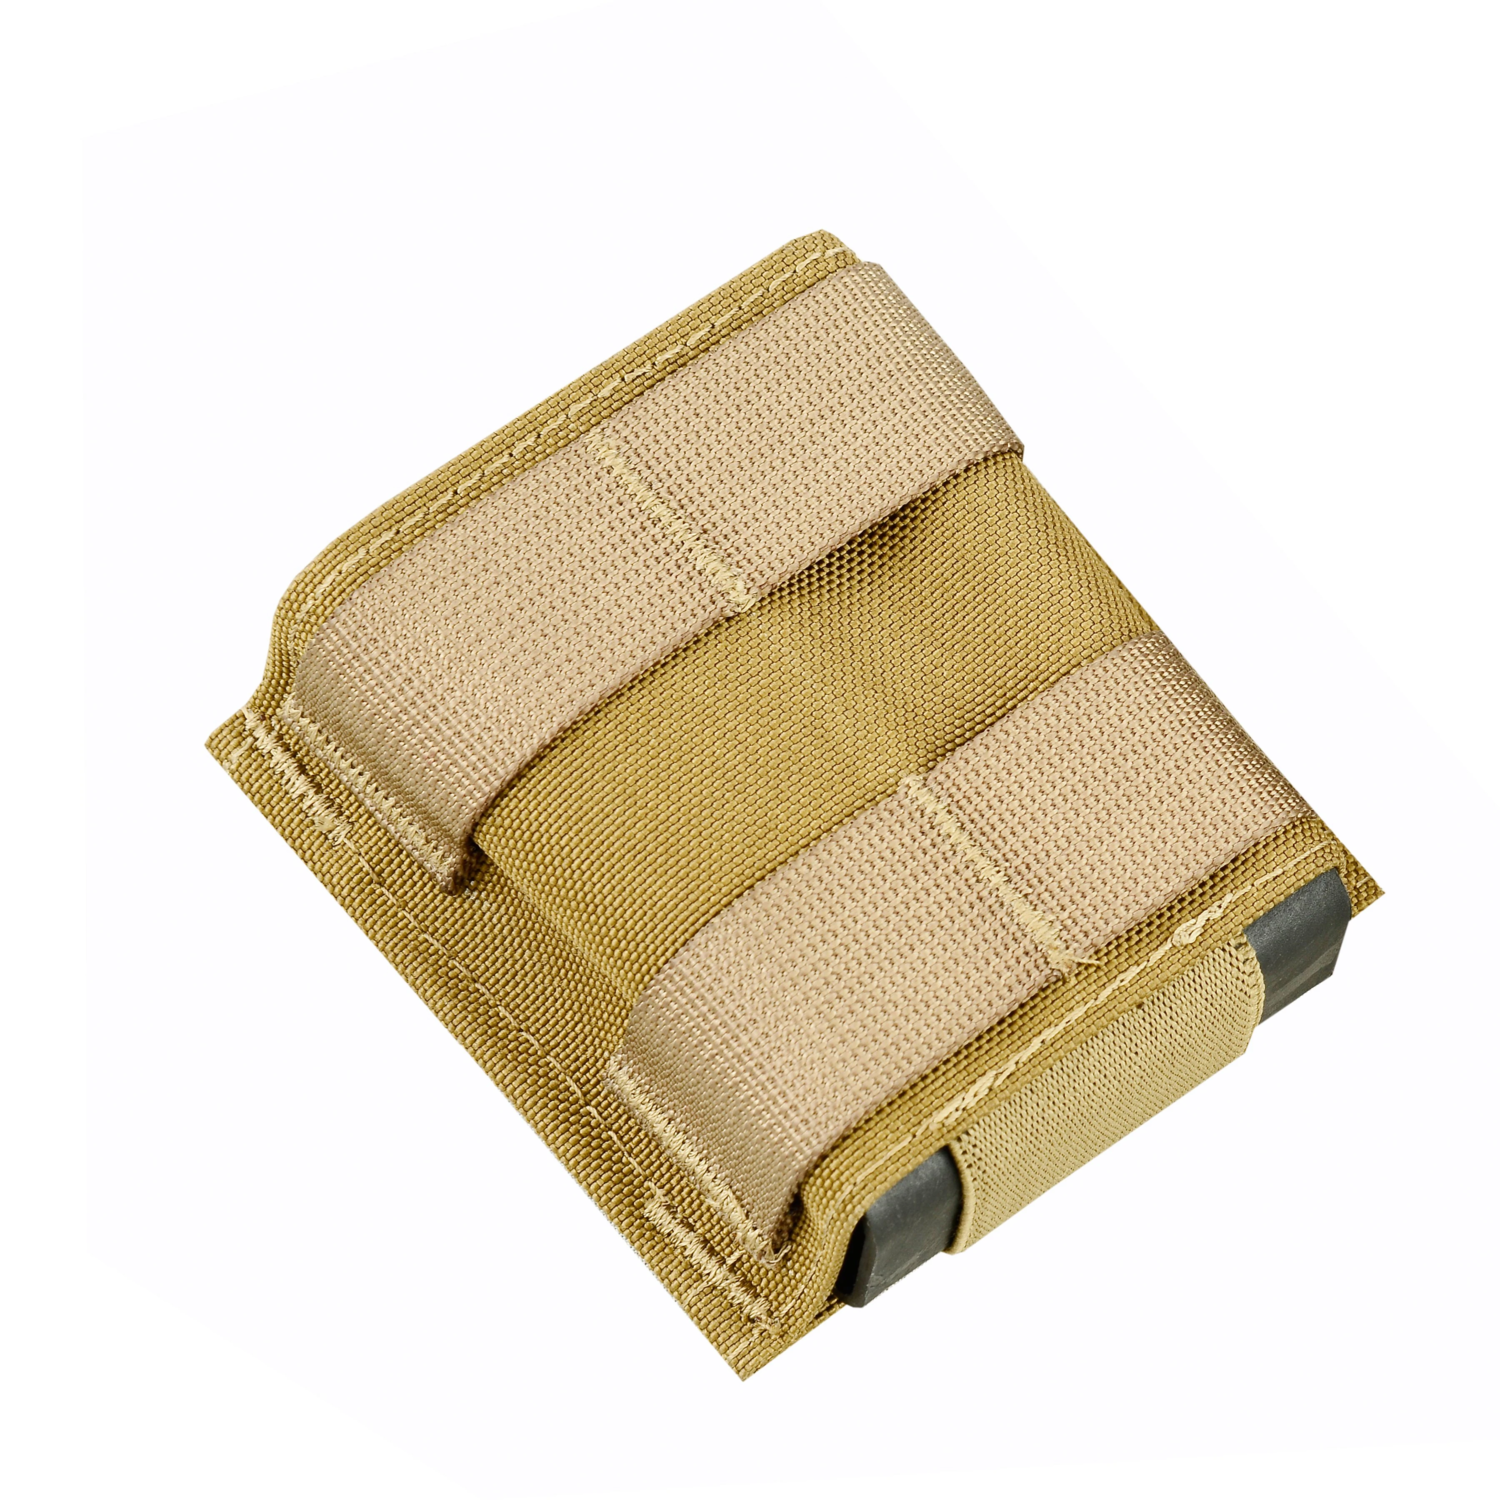 SHE-23031 Griptac Single M4/M16 Mag Pouch by SHS